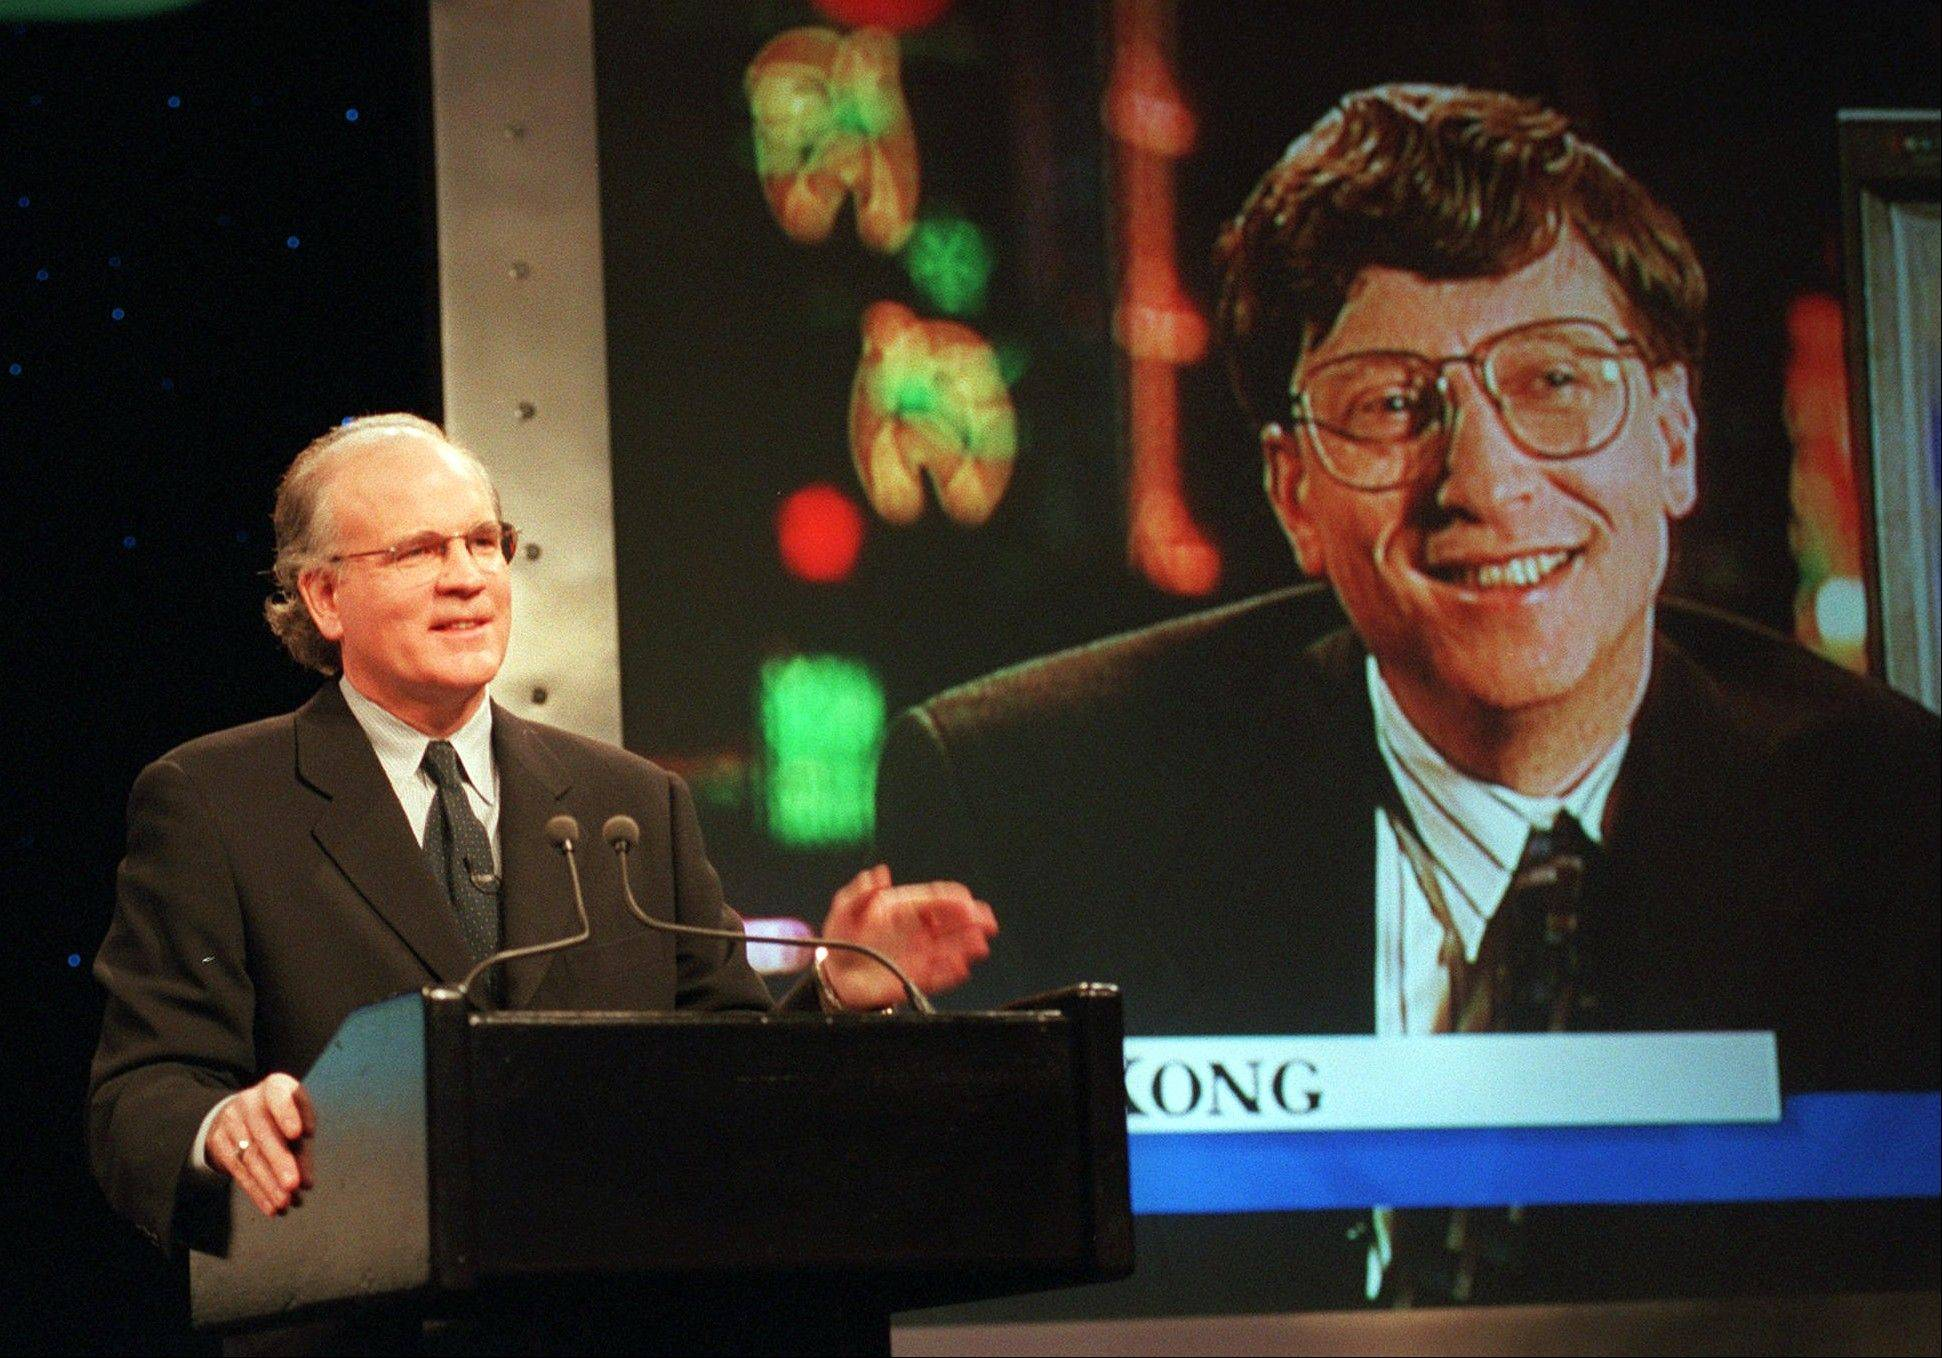 In this Dec. 14, 1995, file photo, Robert Wright, president and chief executive officer of NBC, speaks in New York with Microsoft Chairman Bill Gates, displayed on screen, speaks from Hong Kong, during a news conference announcing that NBC and Microsoft would form a joint venture to start a cable news channel and related online service called MSNBC.